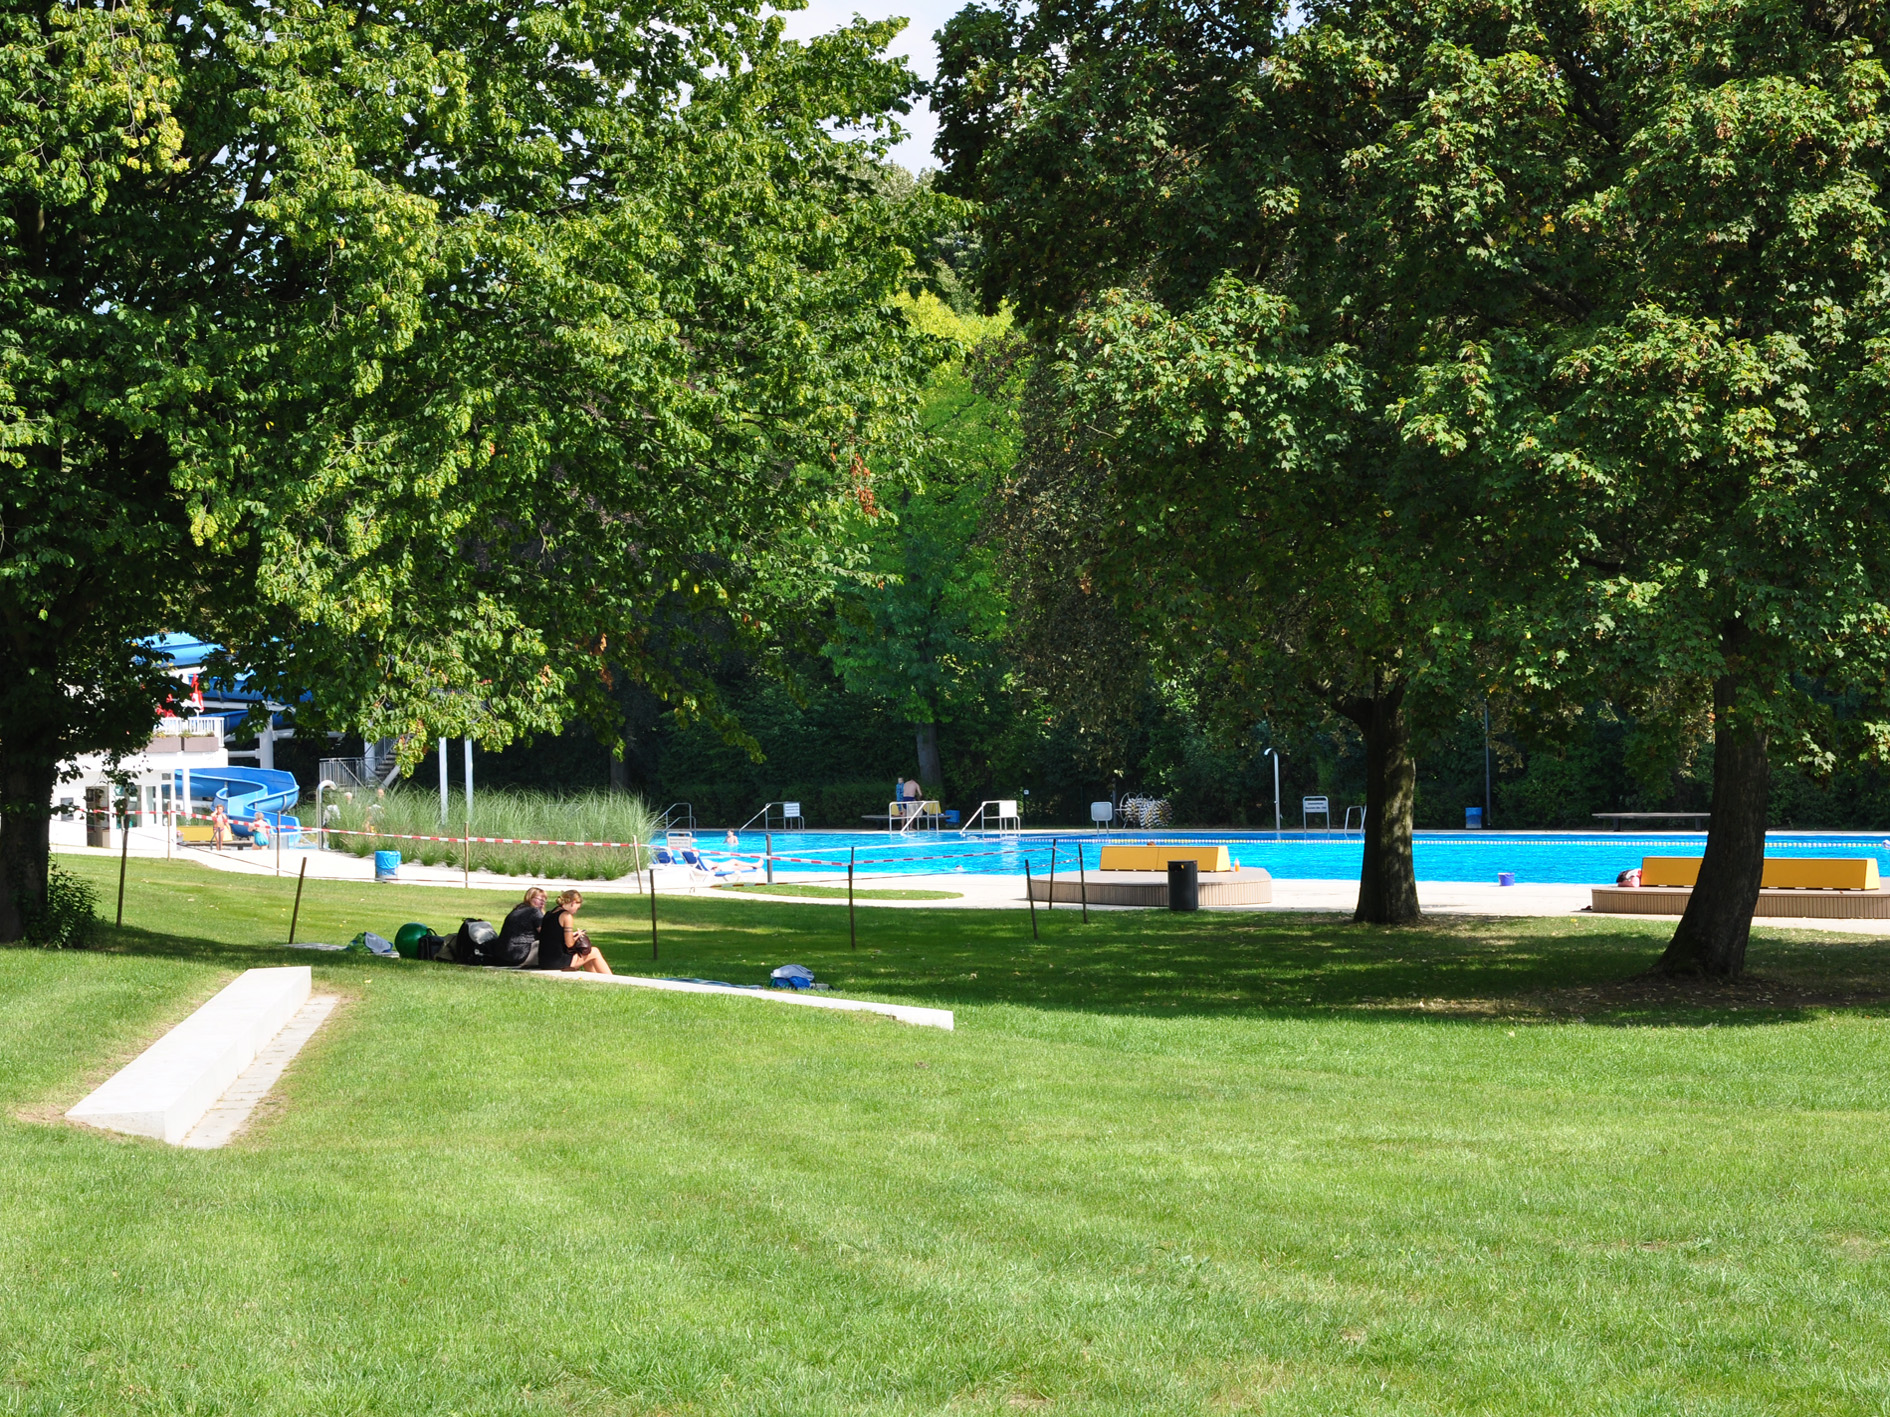 1511_Freibad_Bad_Salzdetfurth_8.jpg